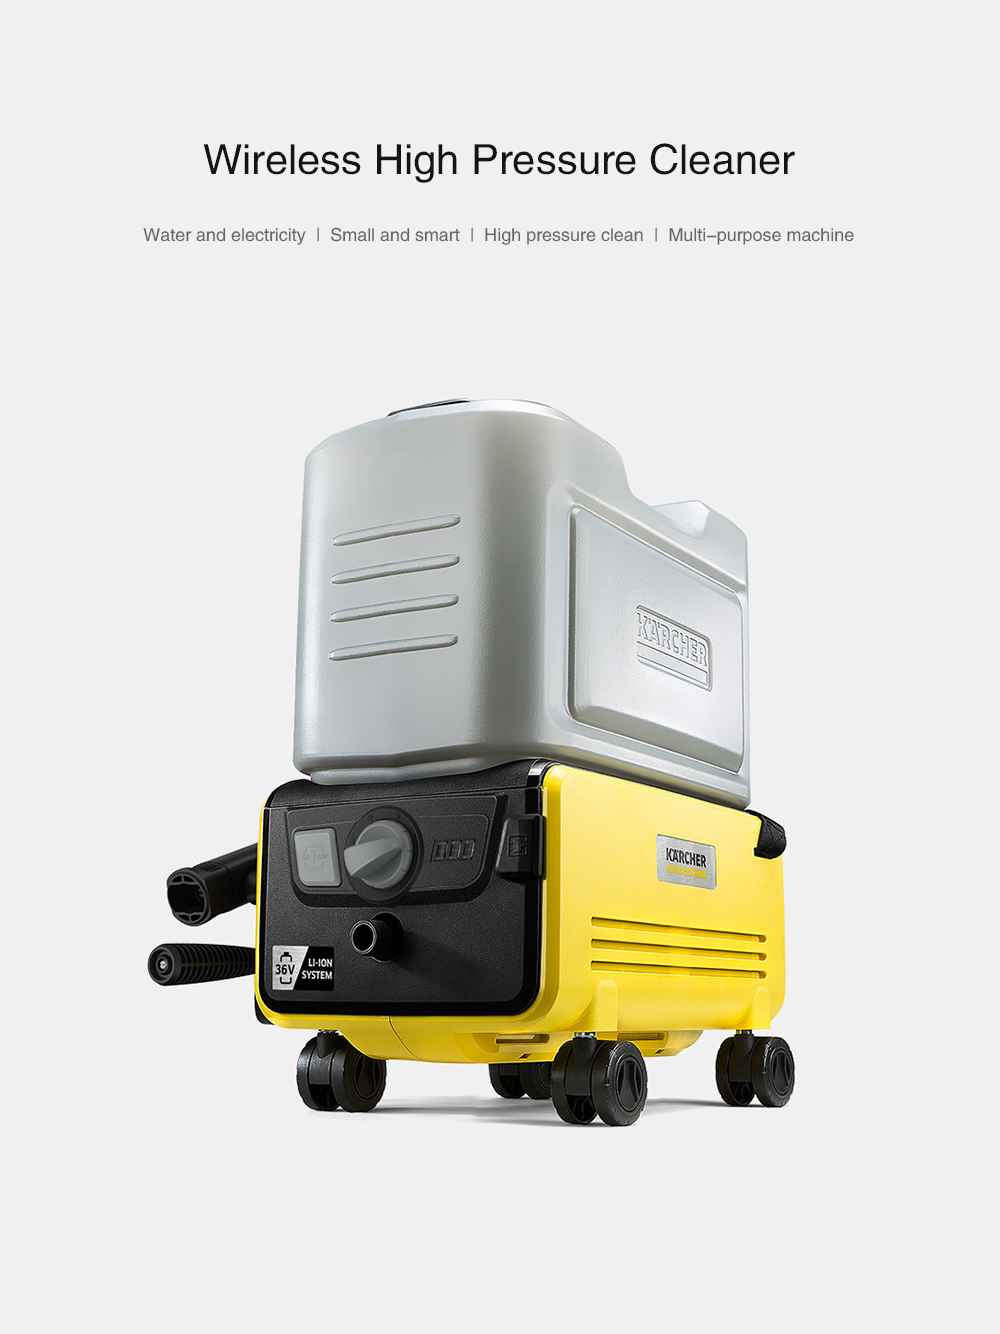 Karcher K2 FM Cordless Wireless Pressure Washer from Xiaomi ypupin- Yellow